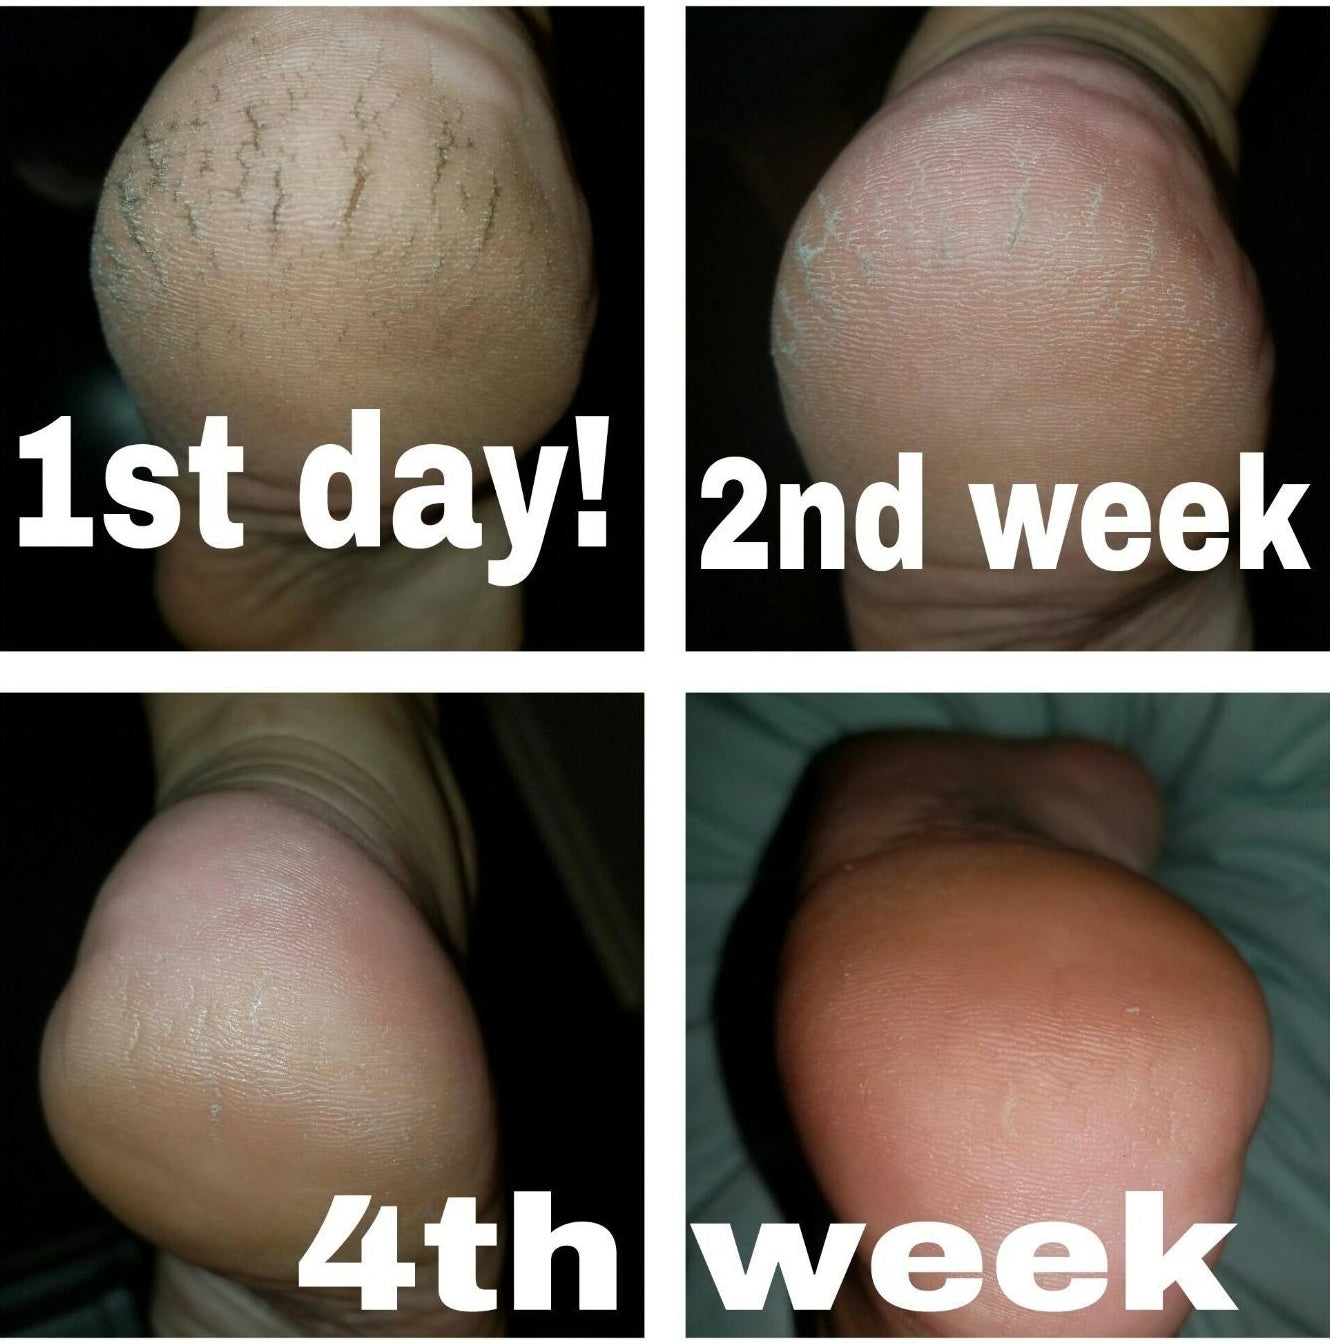 Progression photos showing a reviewer's extremely dry and cracked heals becoming moisturized